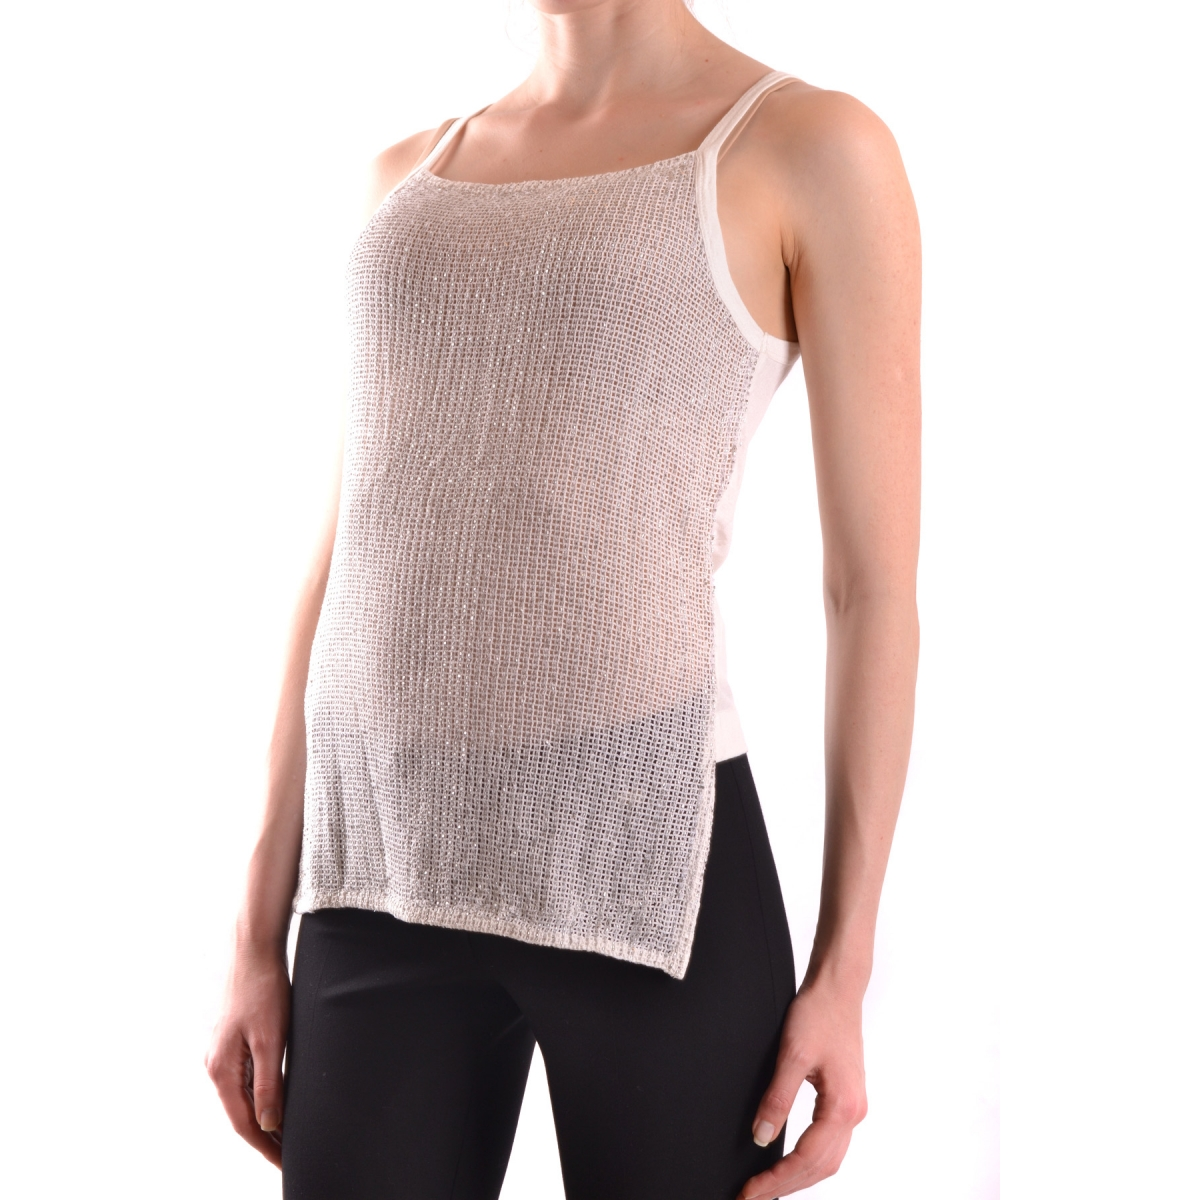 There is no limit to the ways you can wear this T-shirt. The extra-long length is great for coverage and laying, throw on over a tank or pull on a leather jacket and frayed jeans for an urban-chic loo.